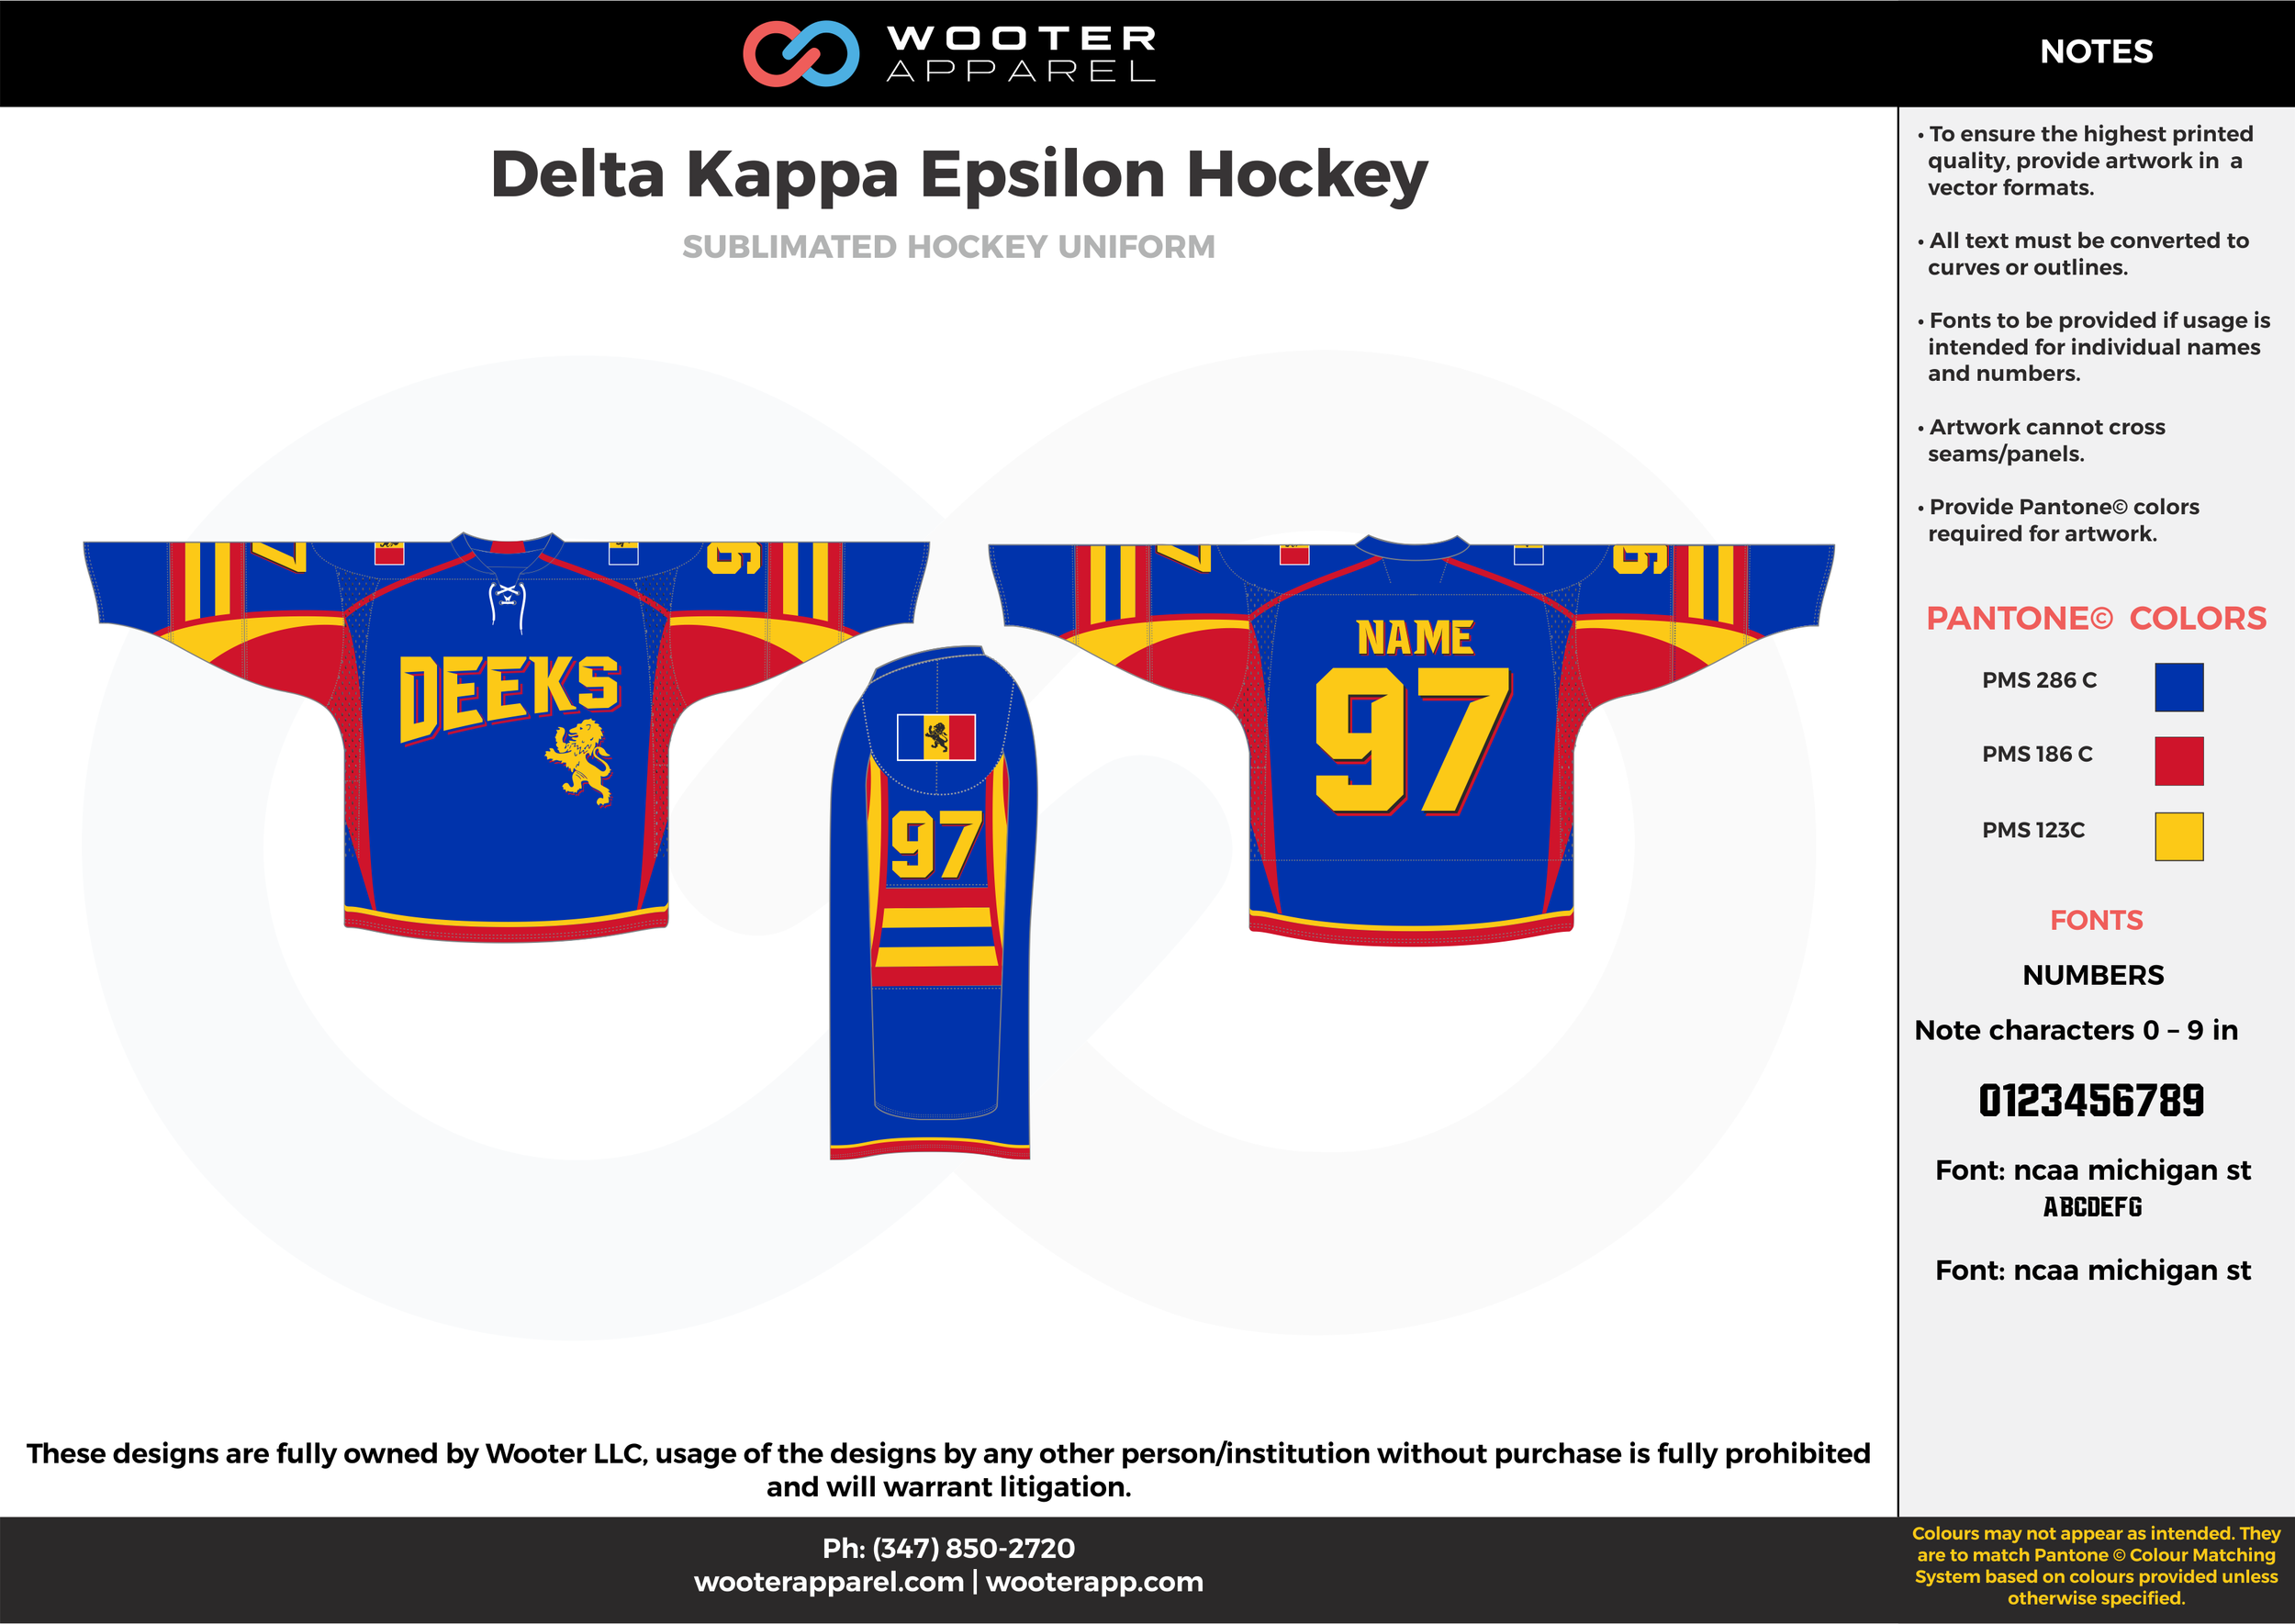 Delta Kappa Epsilon Hockey blue yellow red hockey uniforms jerseys